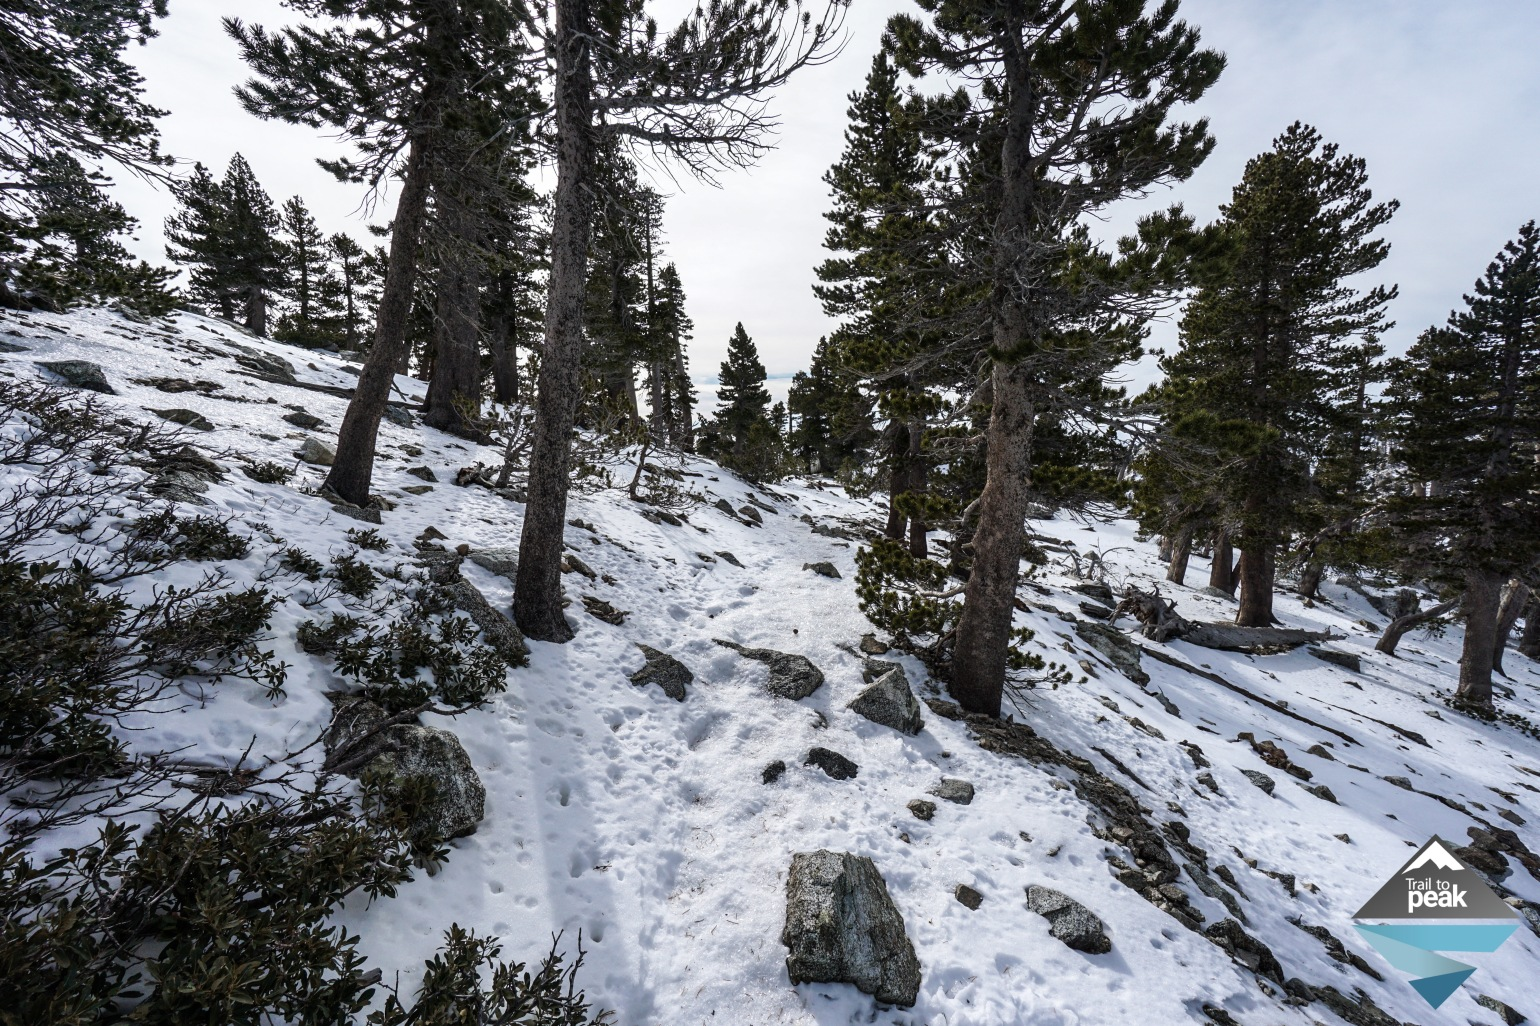 Mt Baldy Winter Hike Hiking December In The Snow With Dogs